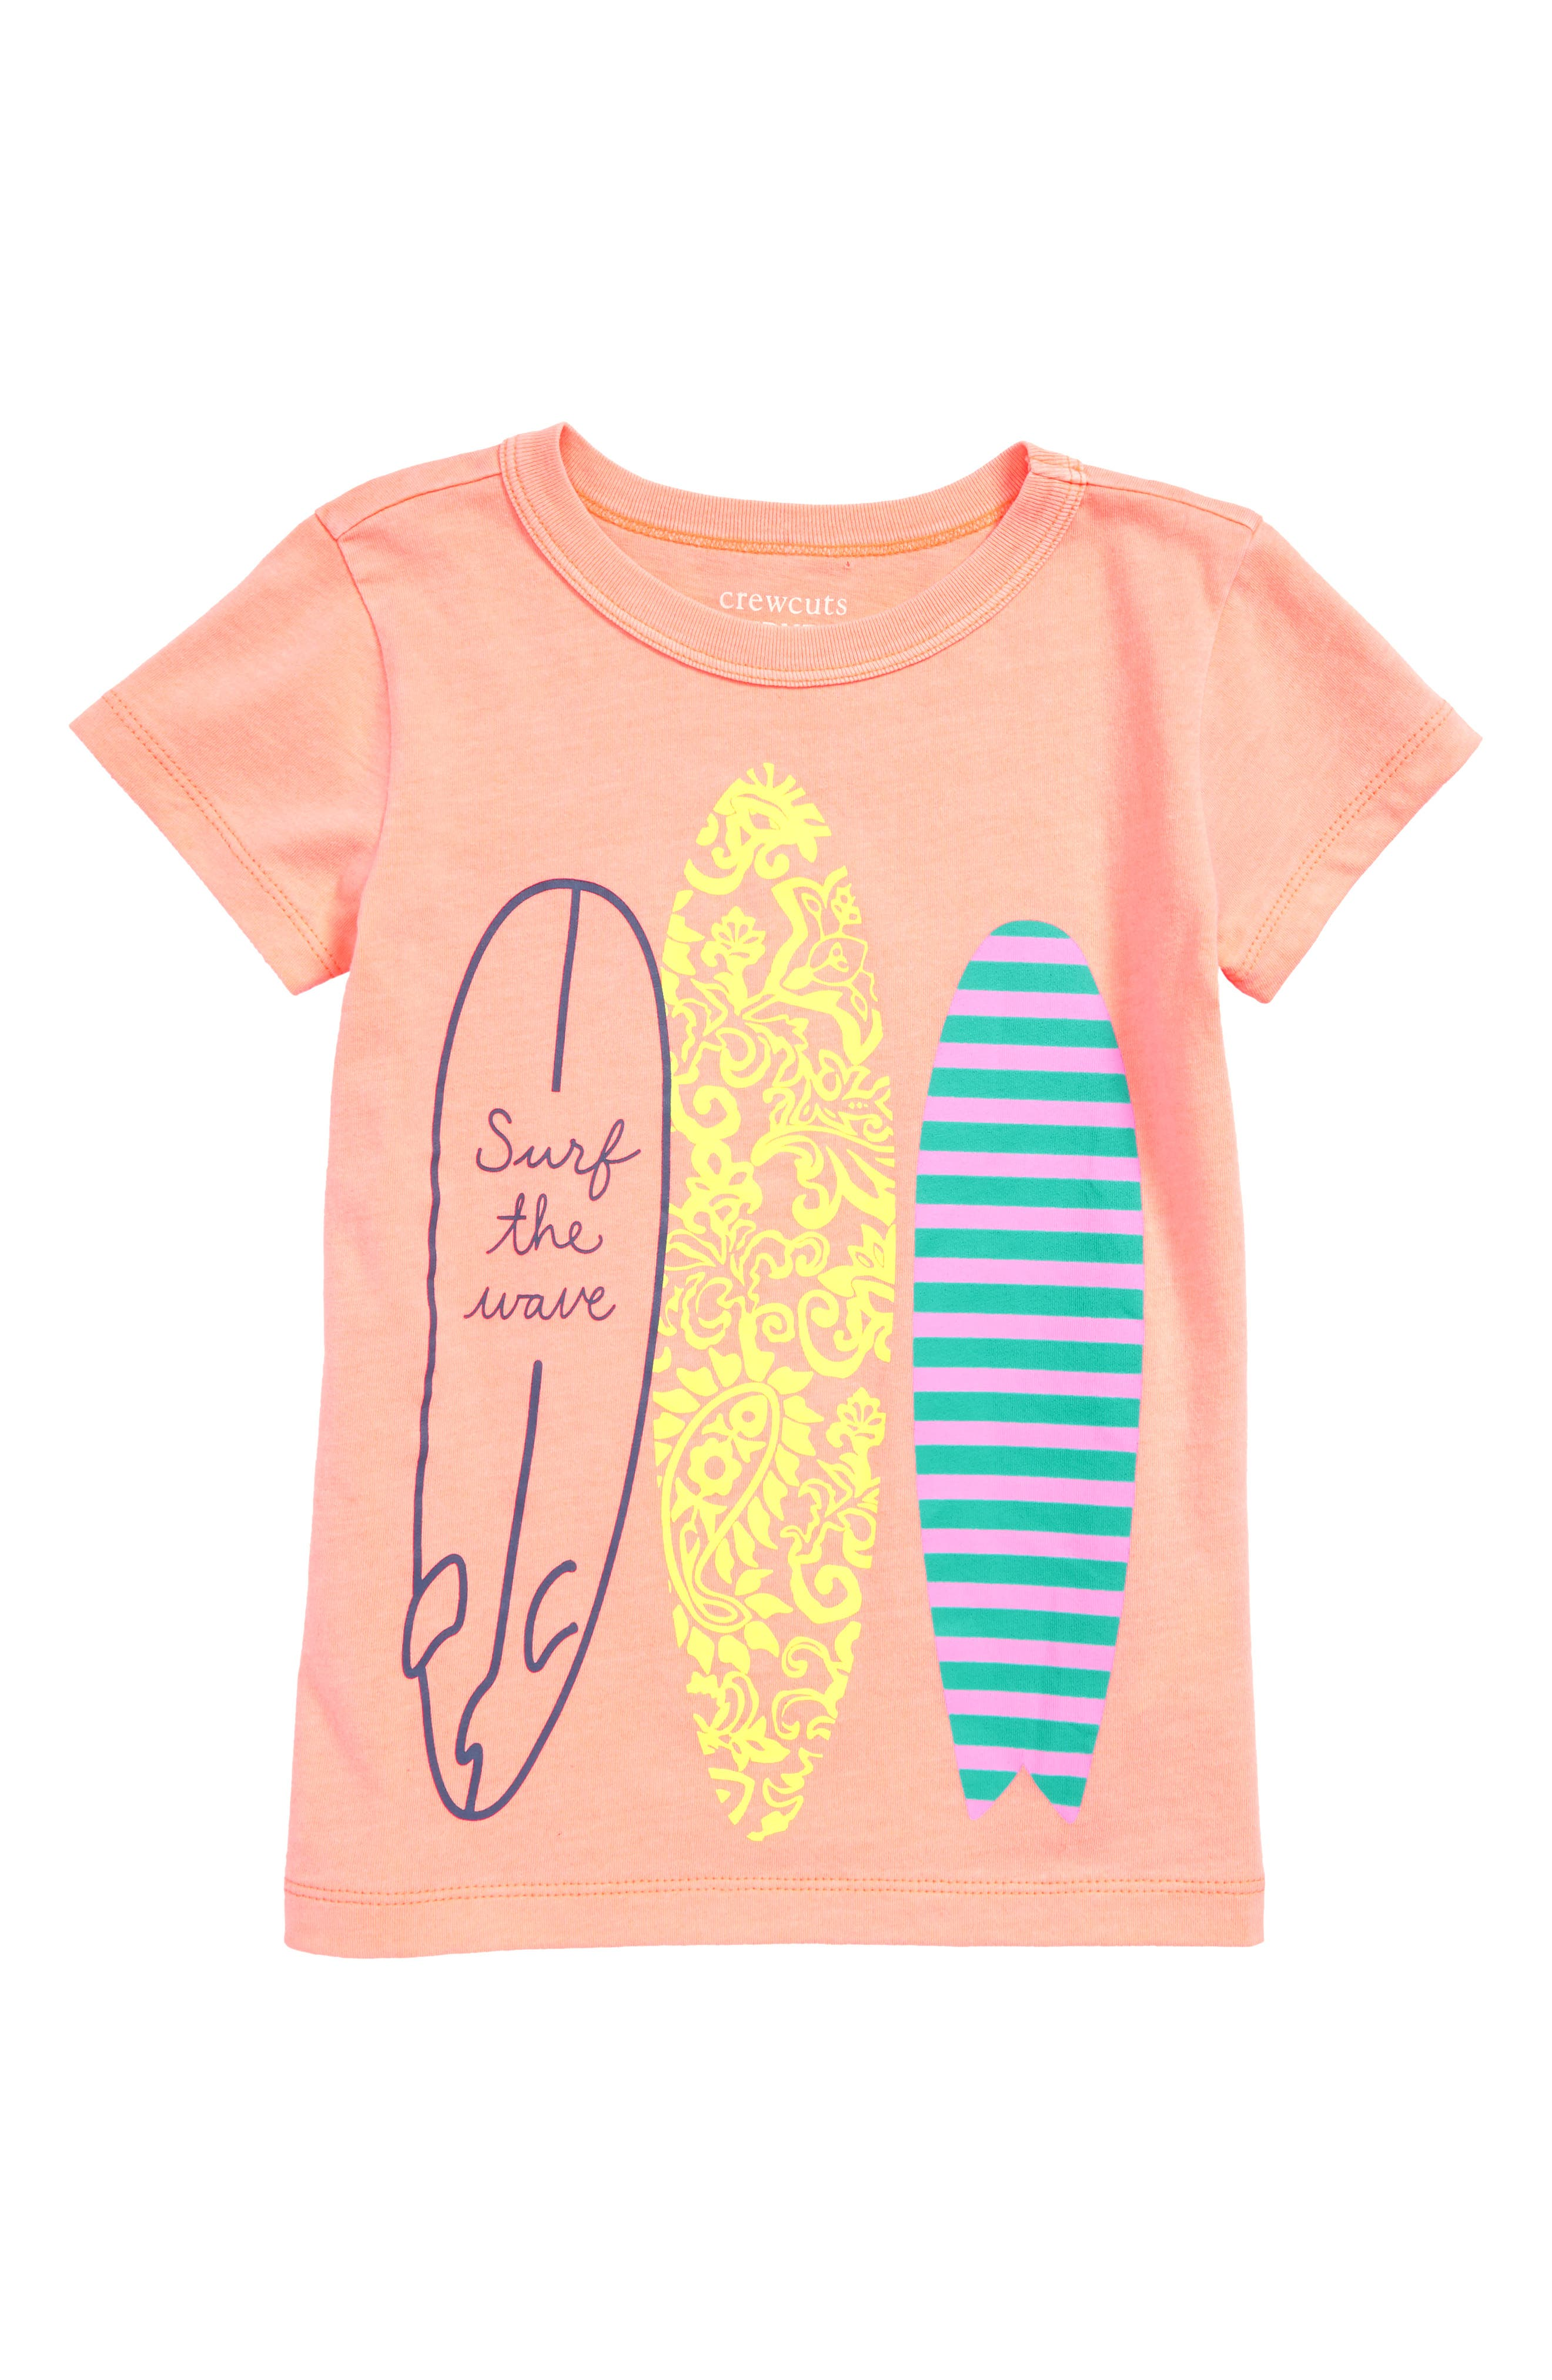 CREWCUTS BY J.CREW Surf the Wave Tee, Main, color, 800